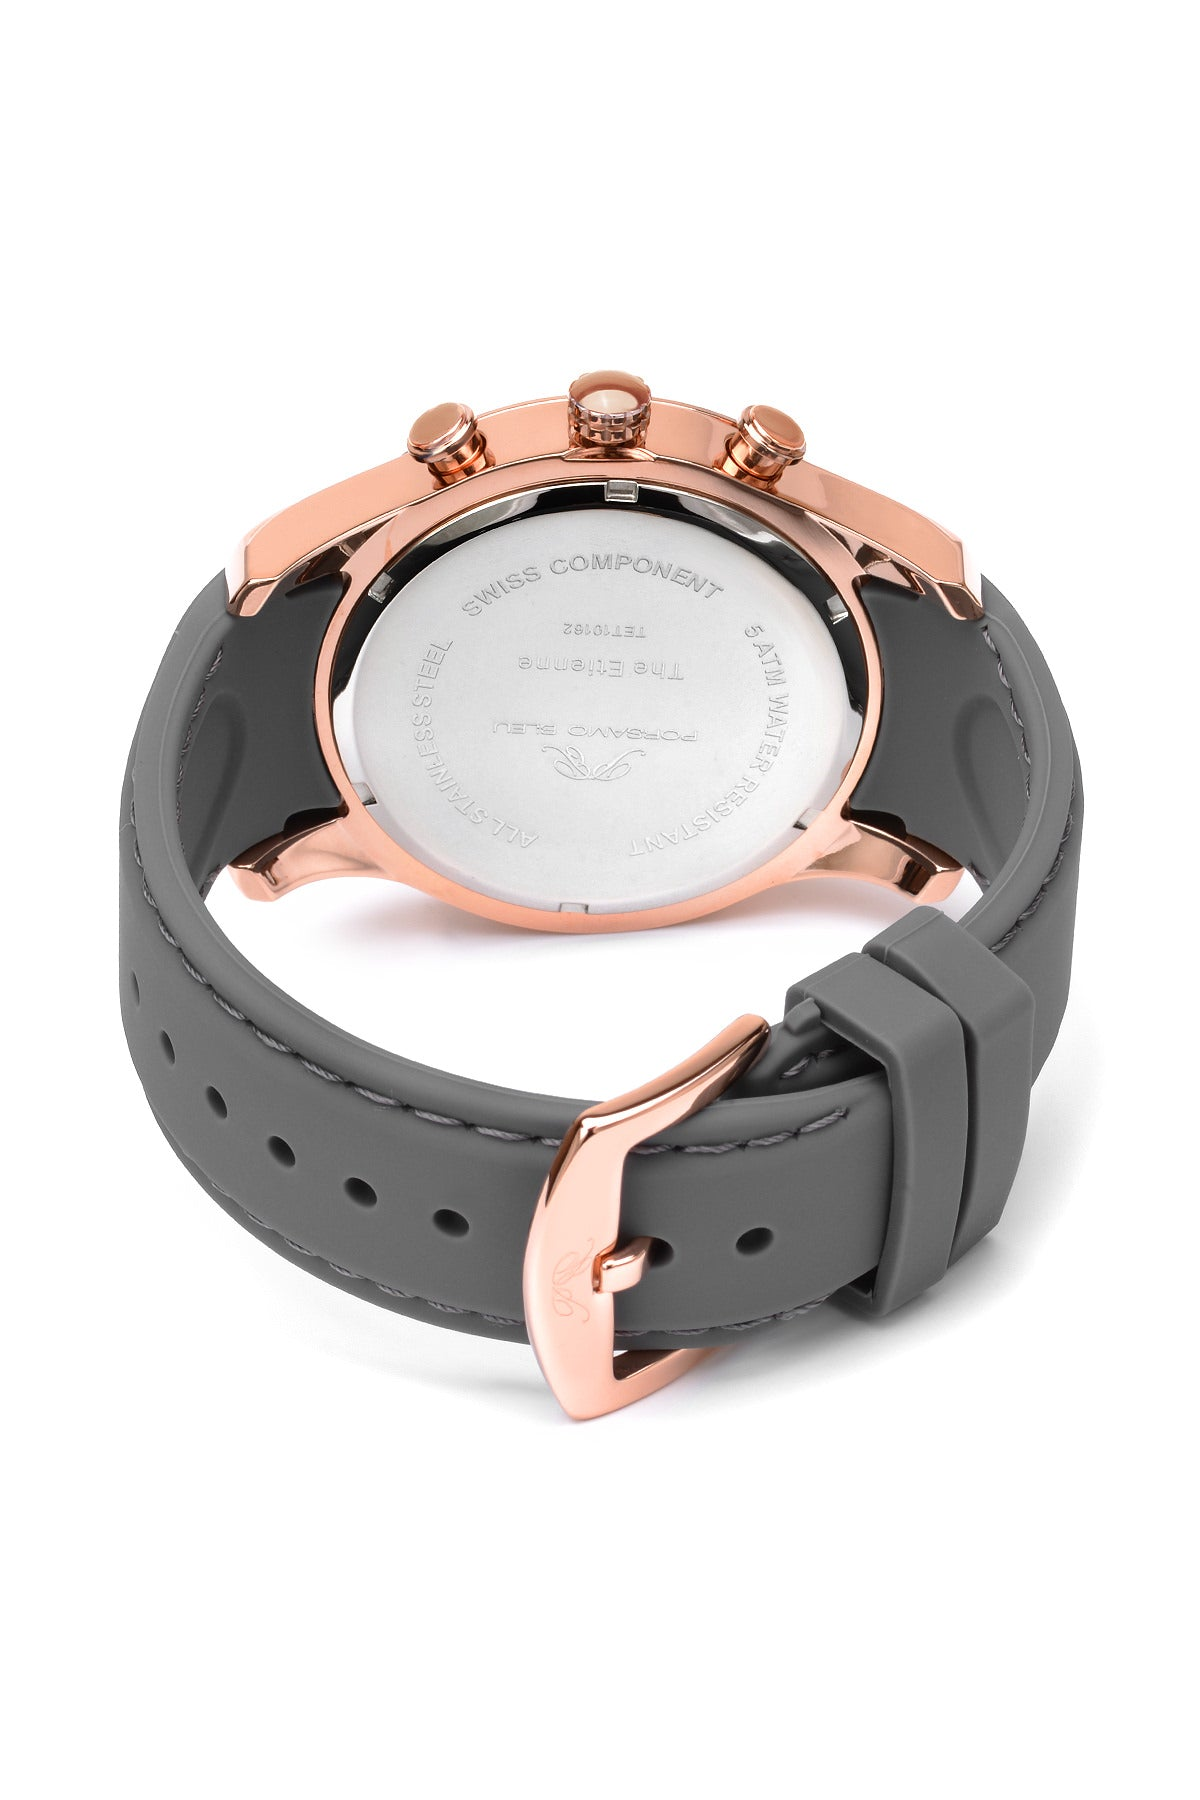 Porsamo Bleu Etienne luxury men's watch, silicone strap, rose, silver 213AETR